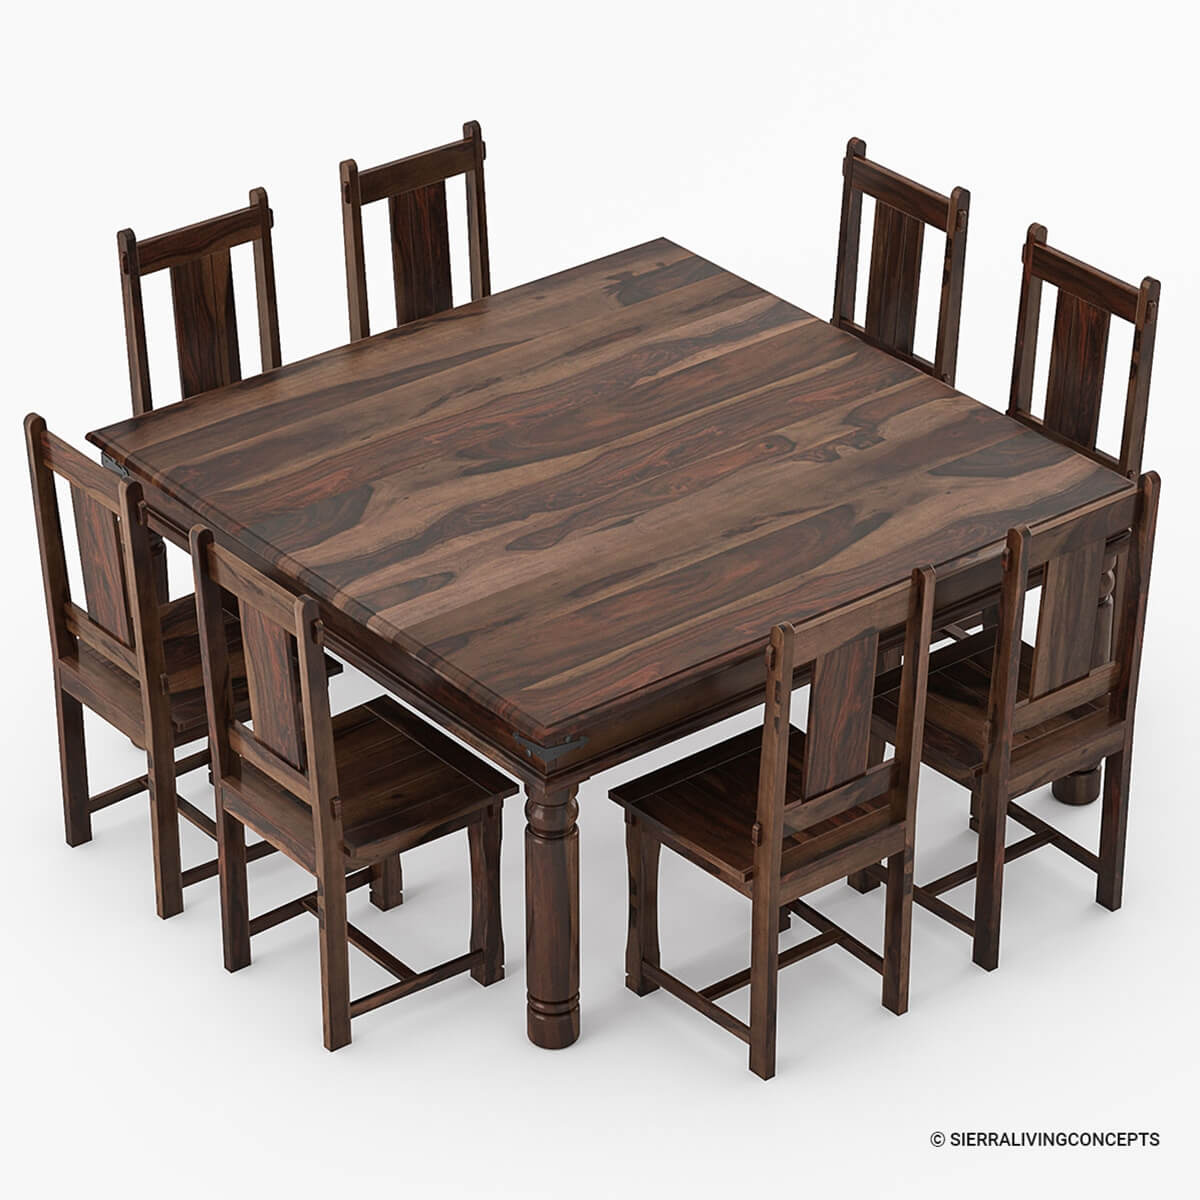 Rustic Dining Room Table Set: Richmond Rustic Solid Wood Large Square Dining Room Table